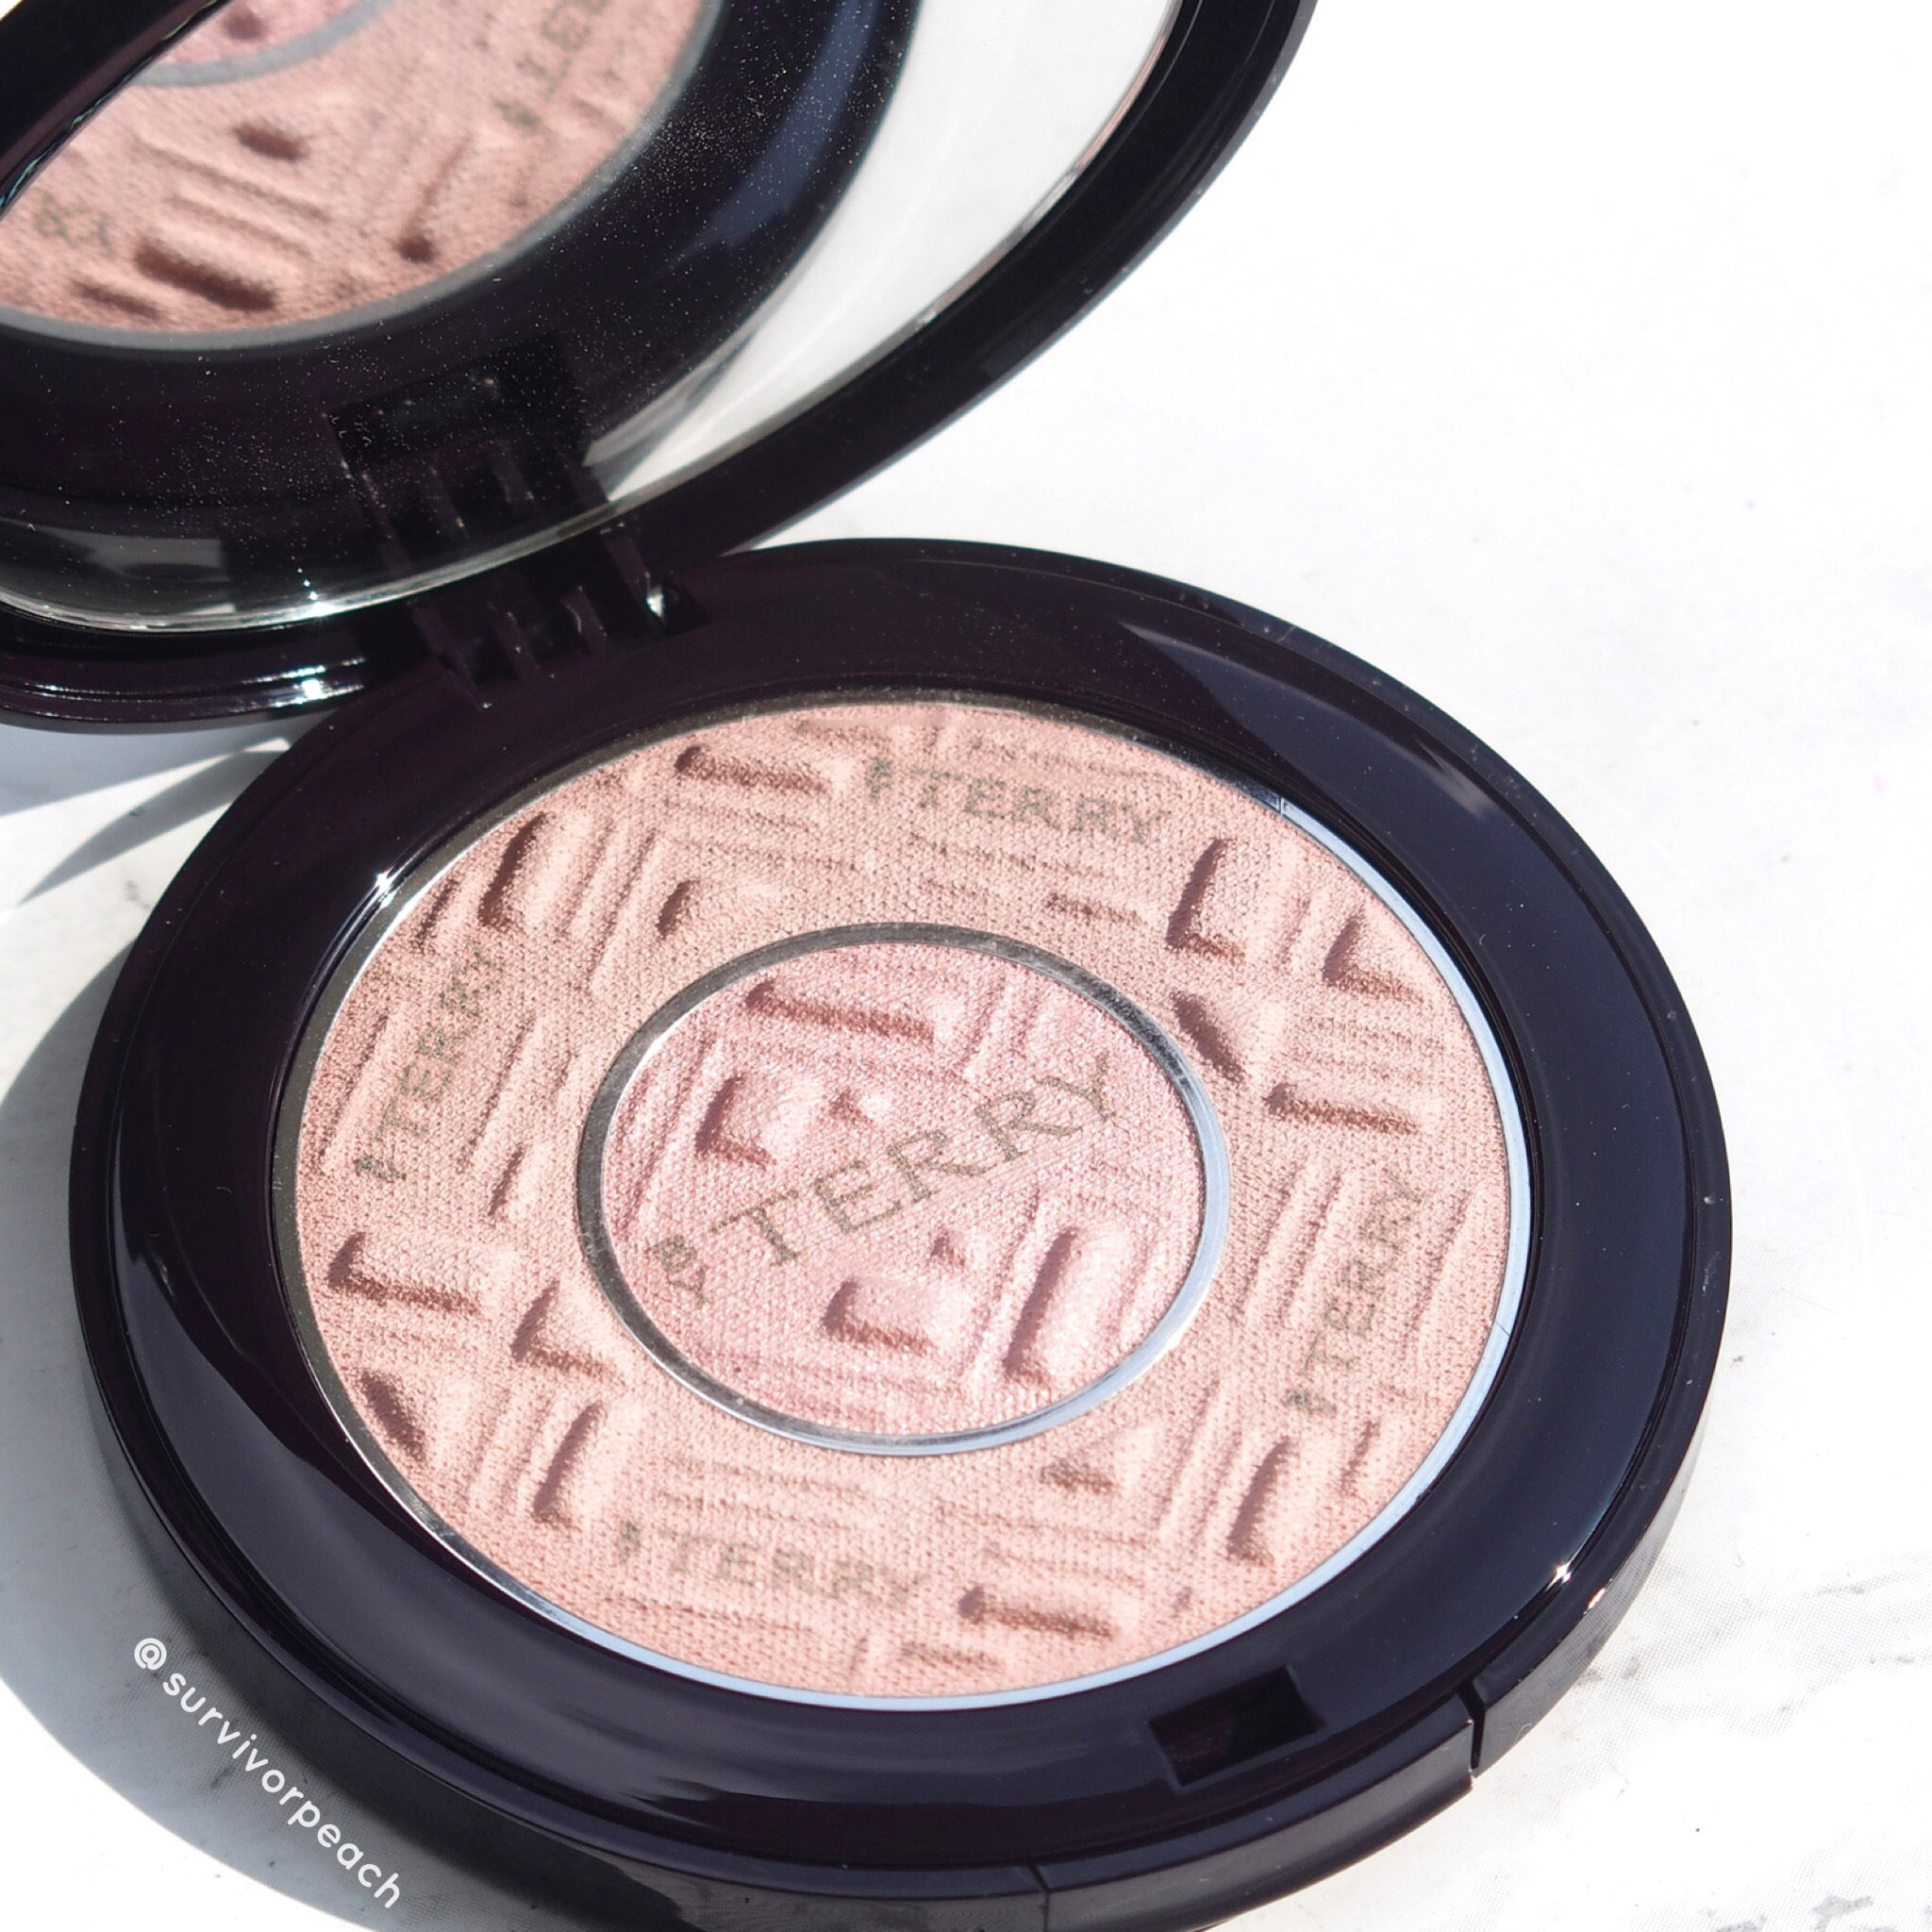 ByTerry Compact-Expert Dual Powder in Rosy Flush